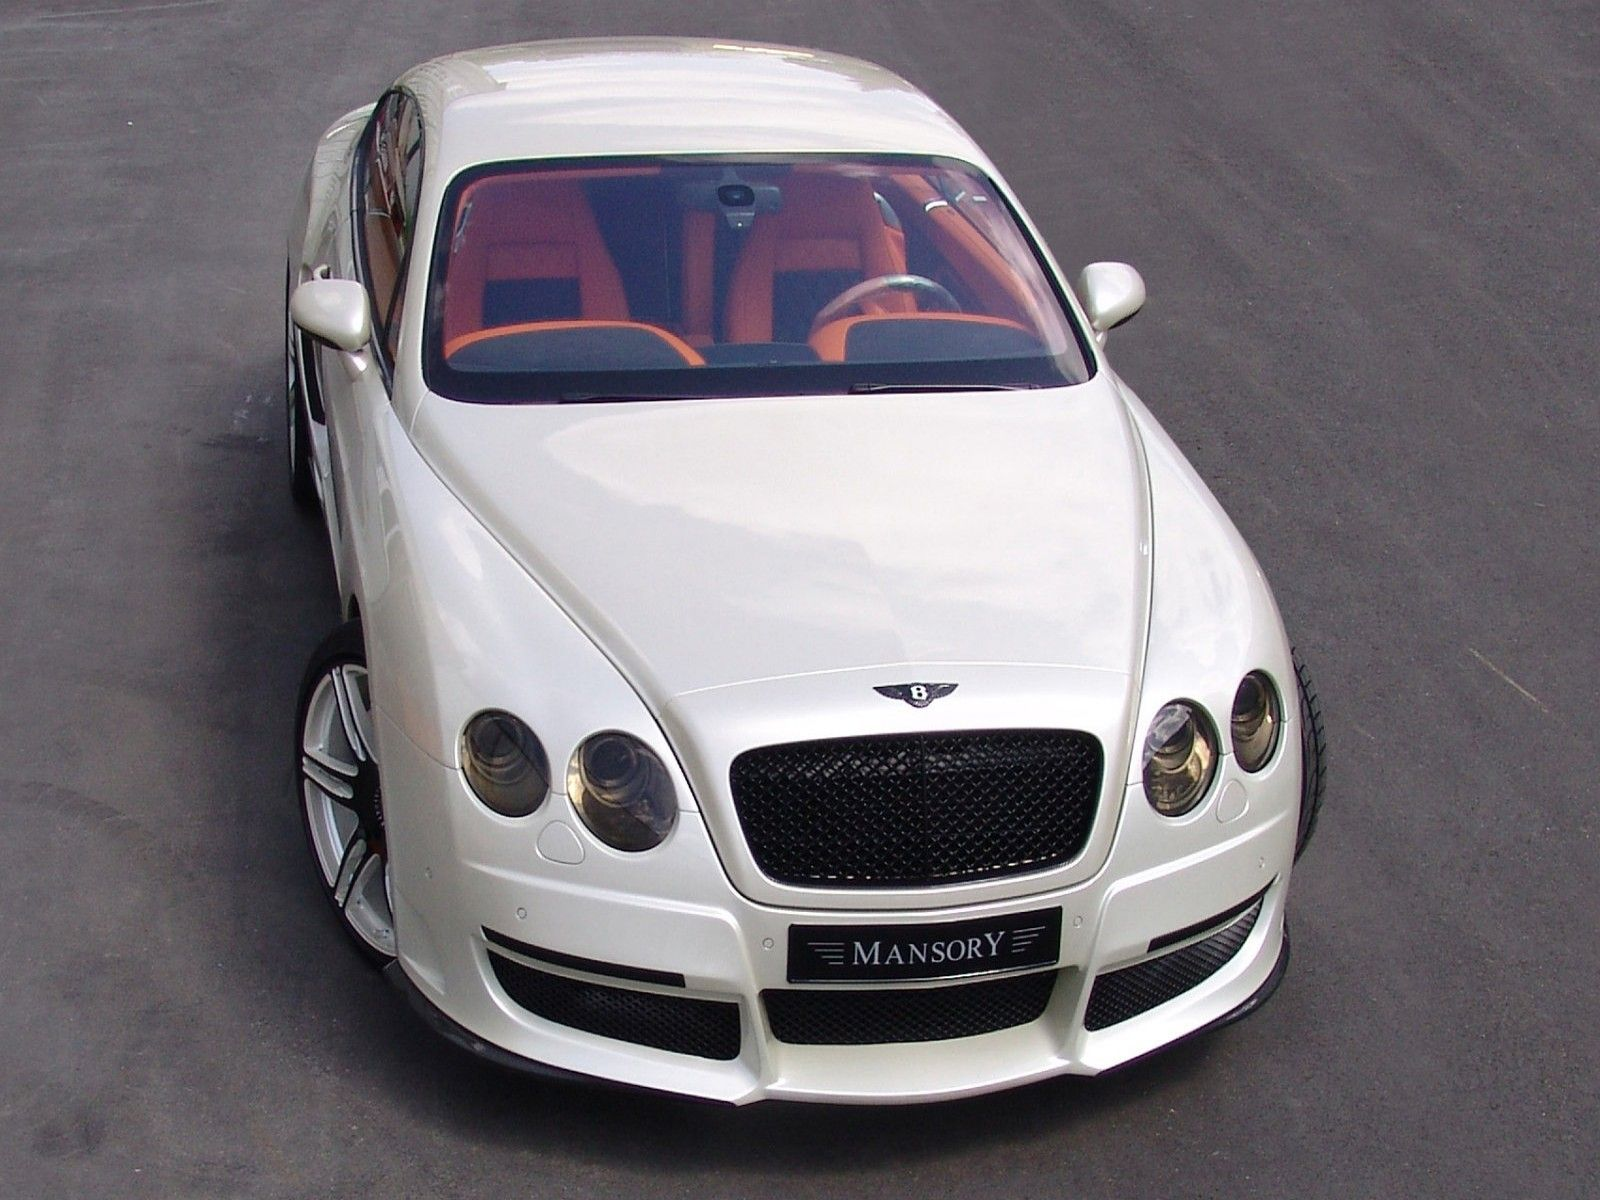 2007 Mansory Le Mansory Bentley Continental Gt Bentley